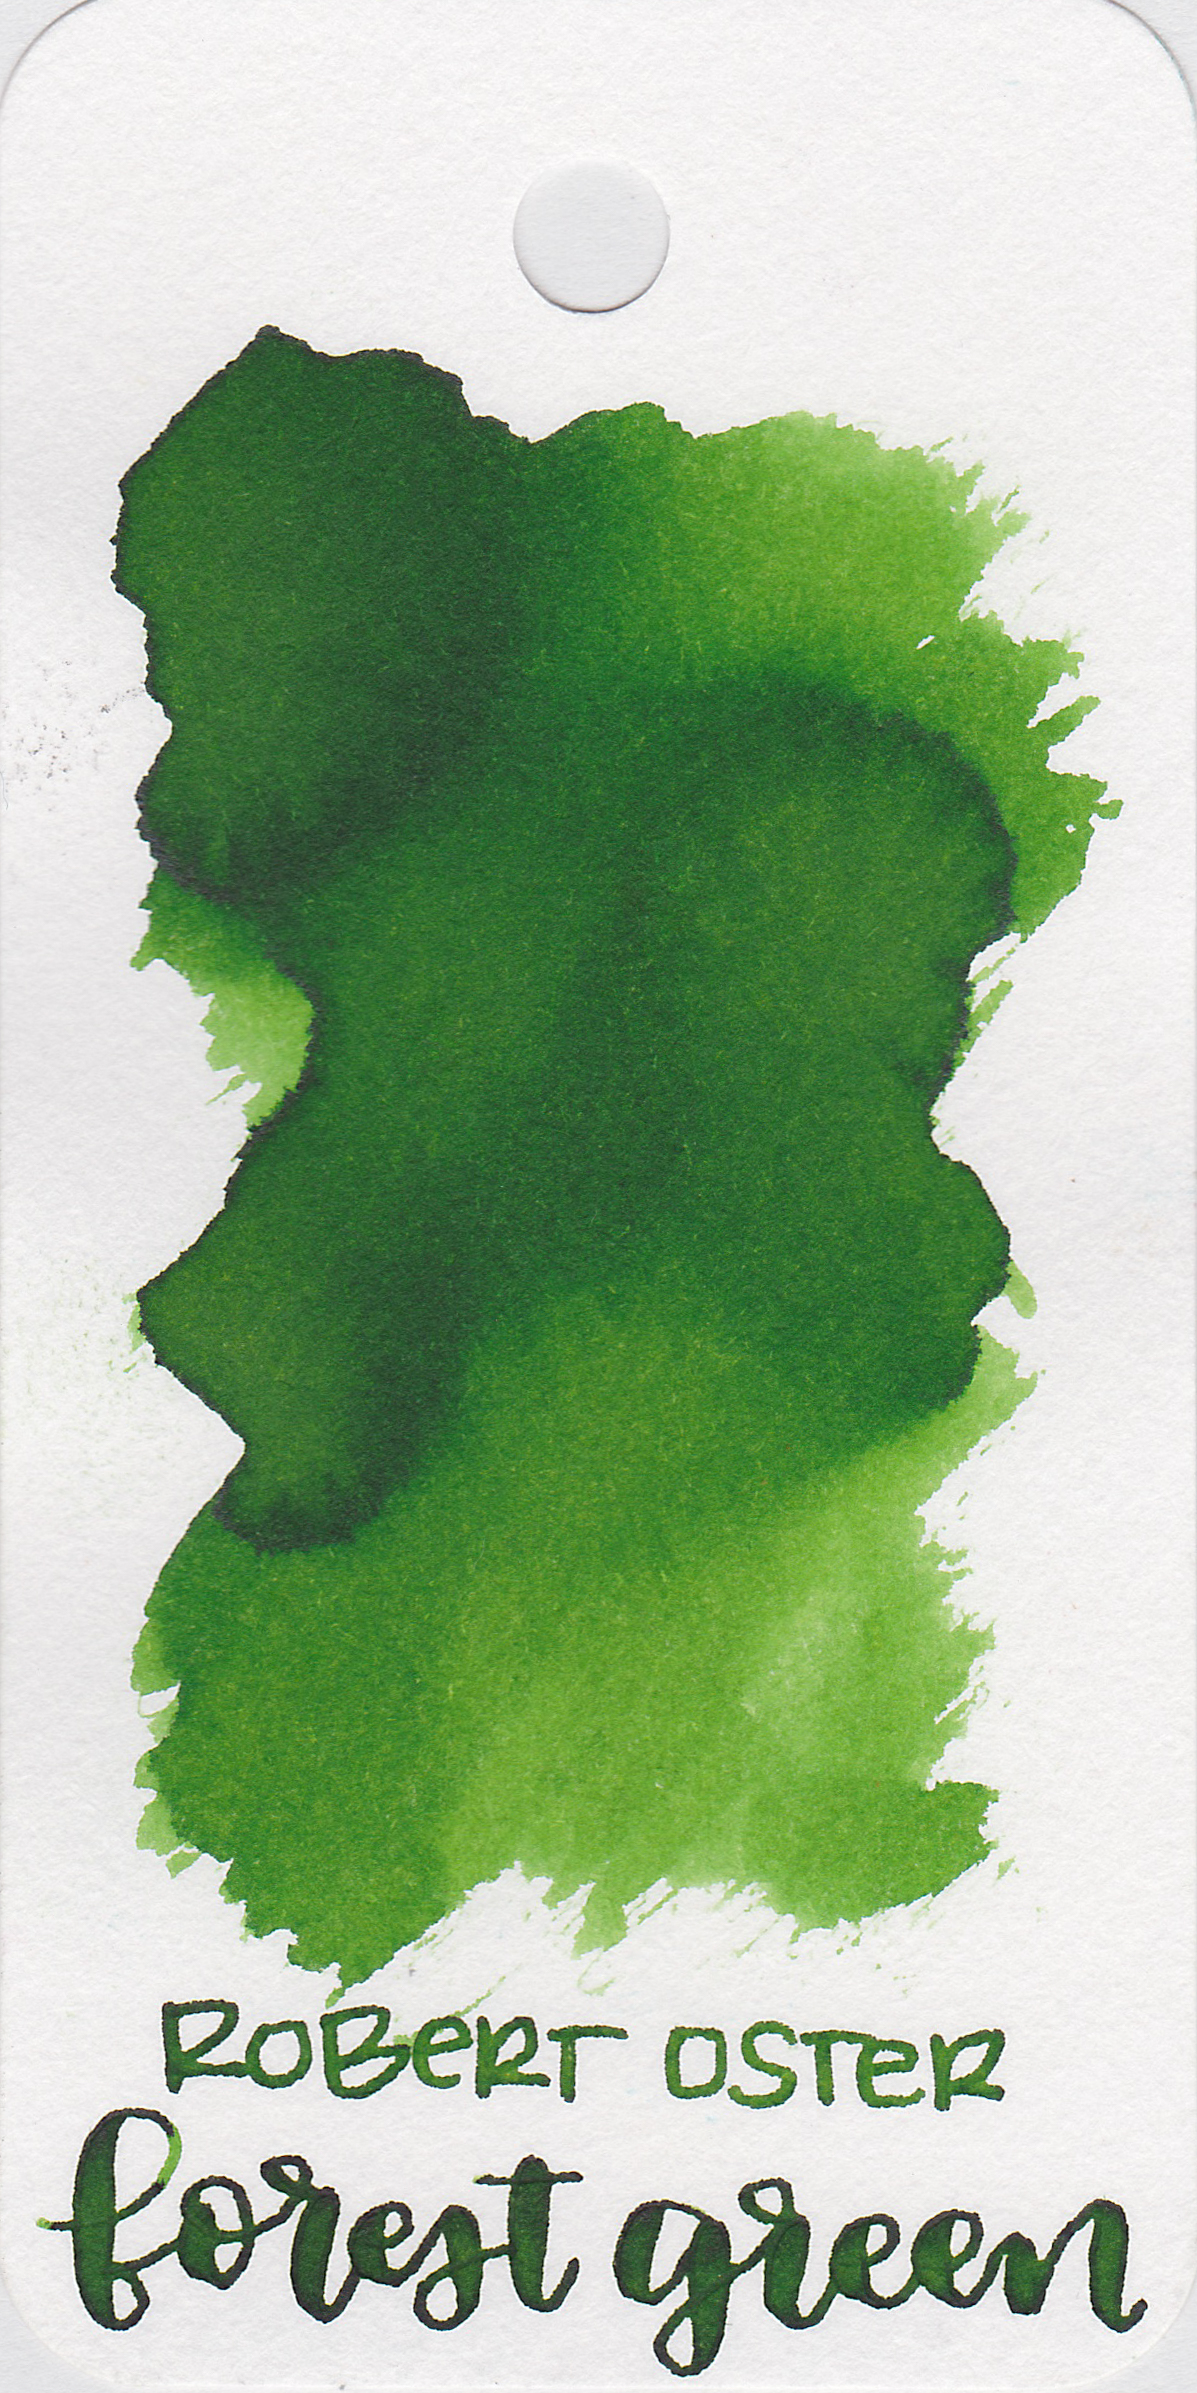 The color: - Forest Green is a medium green with shading.